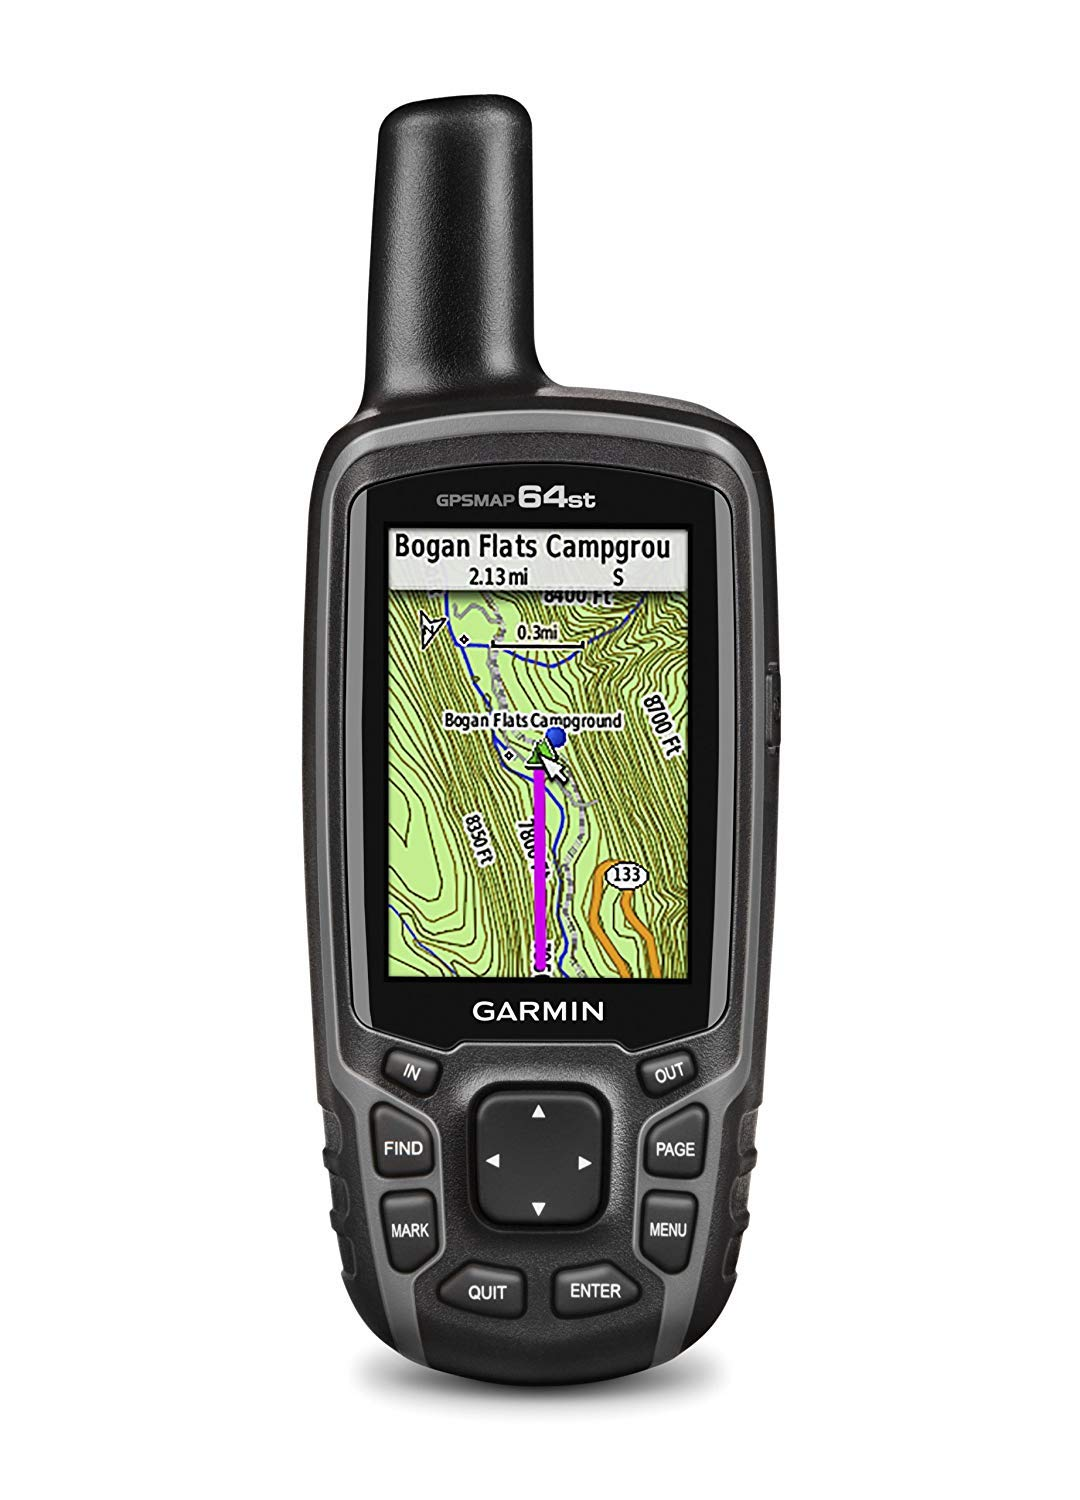 Garmin GPSMAP 64st Topo US 100K GPS Handheld Receiver with 2.6-Inches Blacklit Display (Renewed) by Garmin